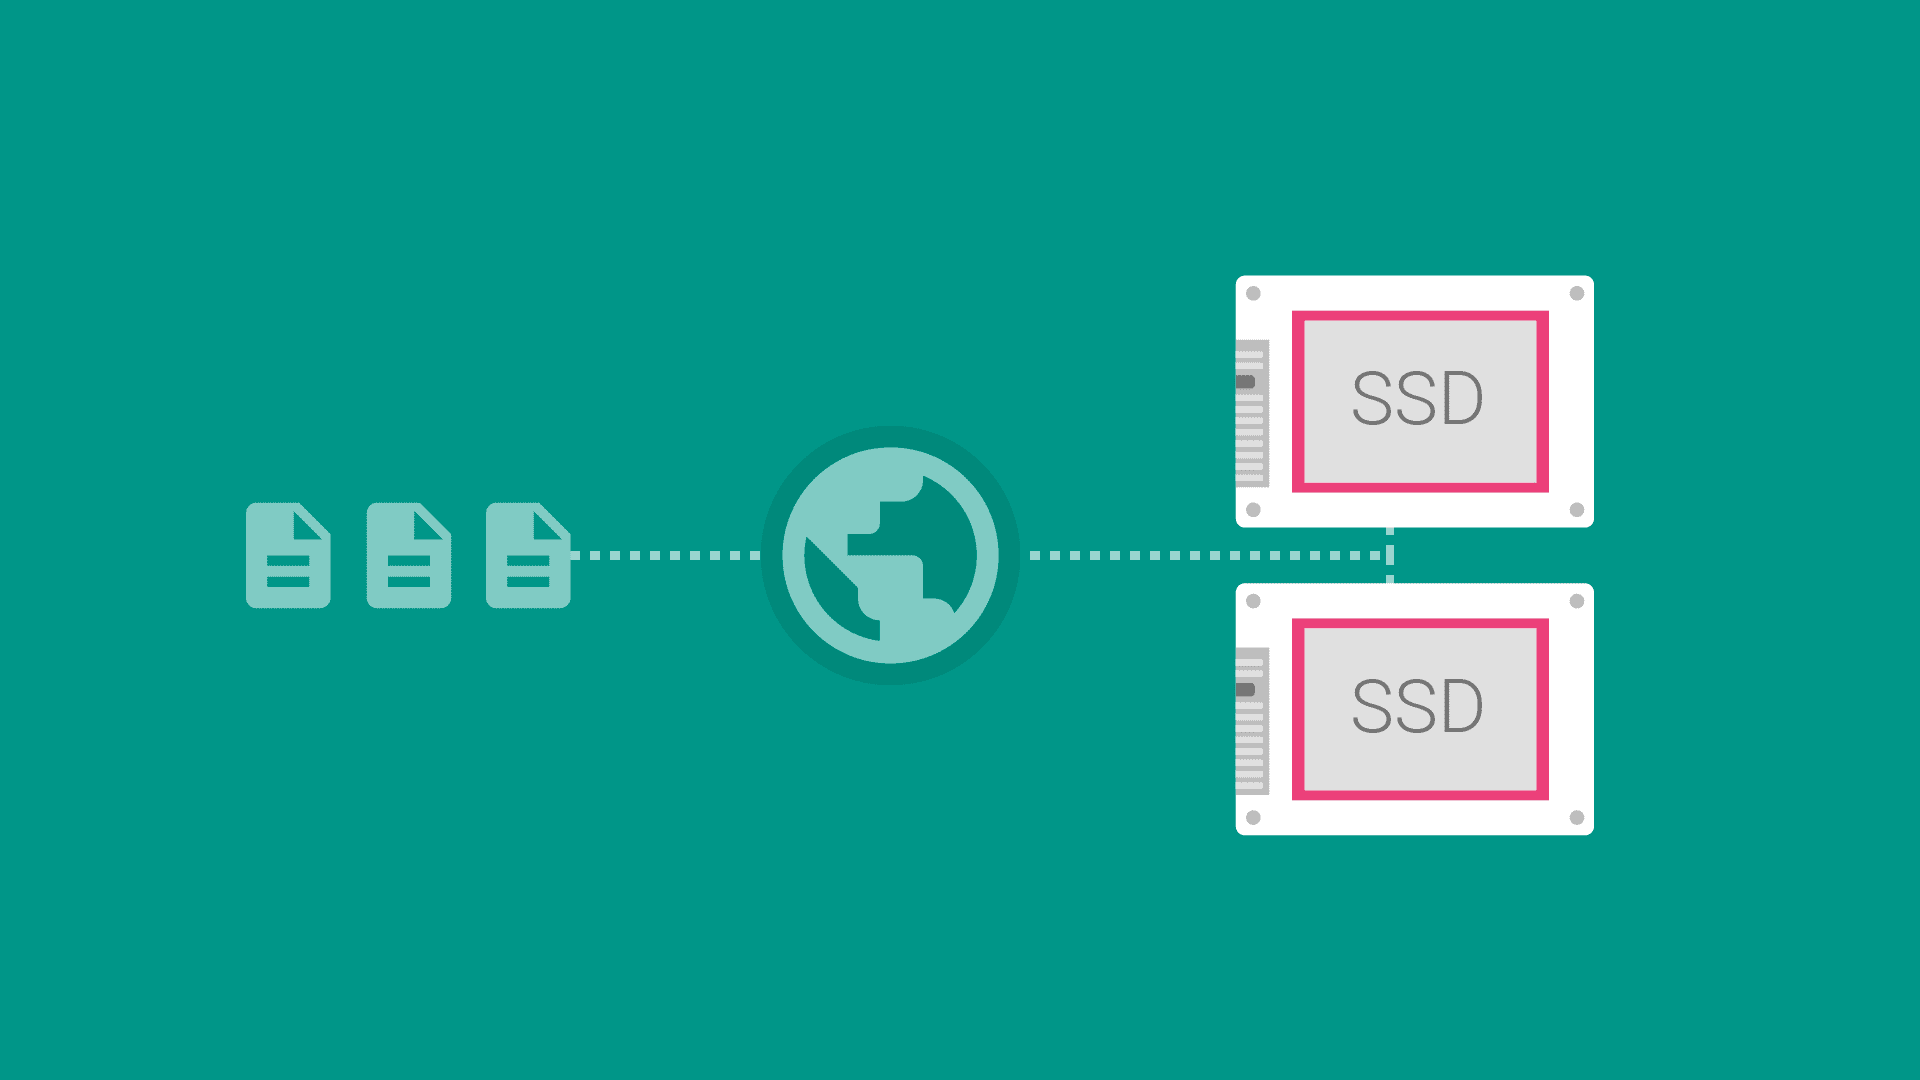 Illustration of SSD hosting diagram